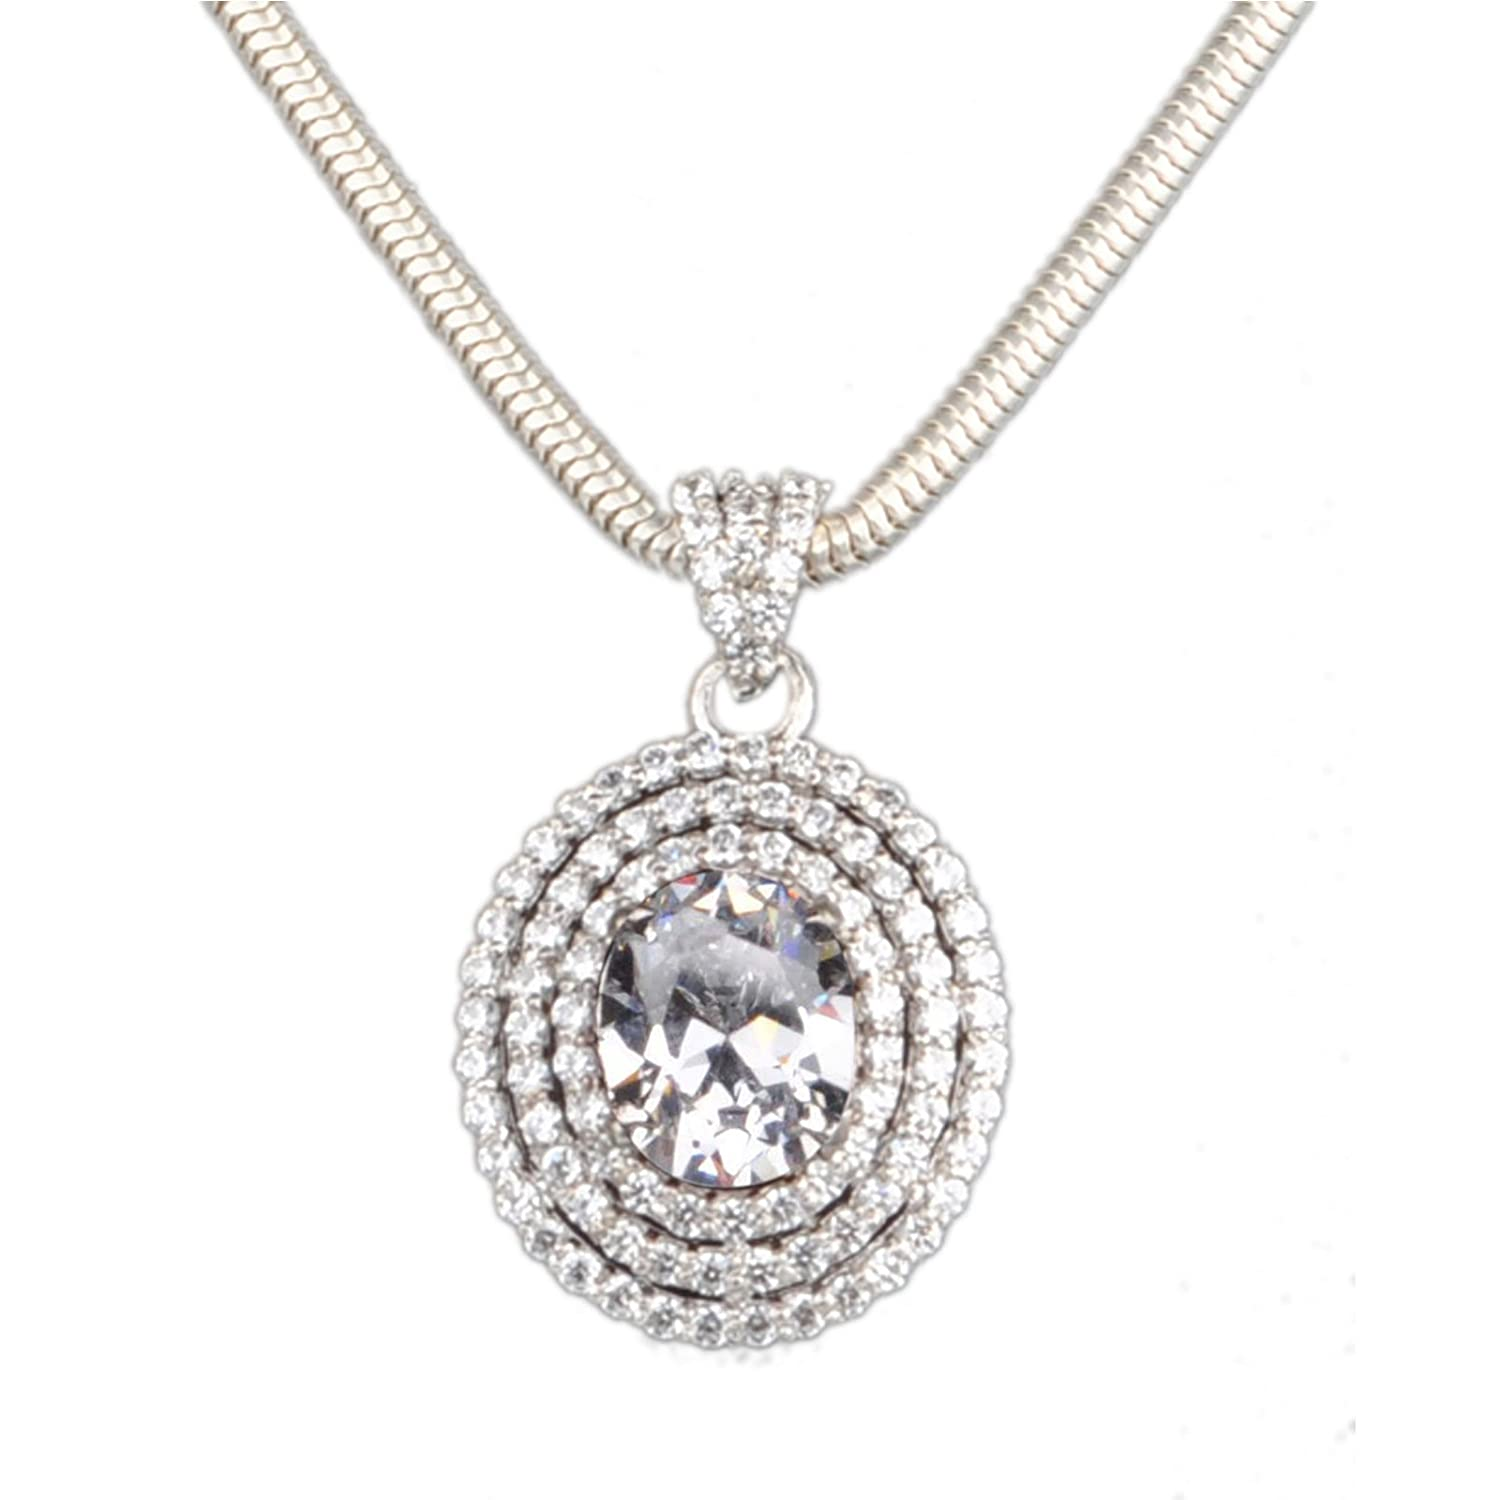 3.50 CARATS OVAL SHAPE CZ SOLITAIRE CLASSY PENDANT WITHOUT CHAIN